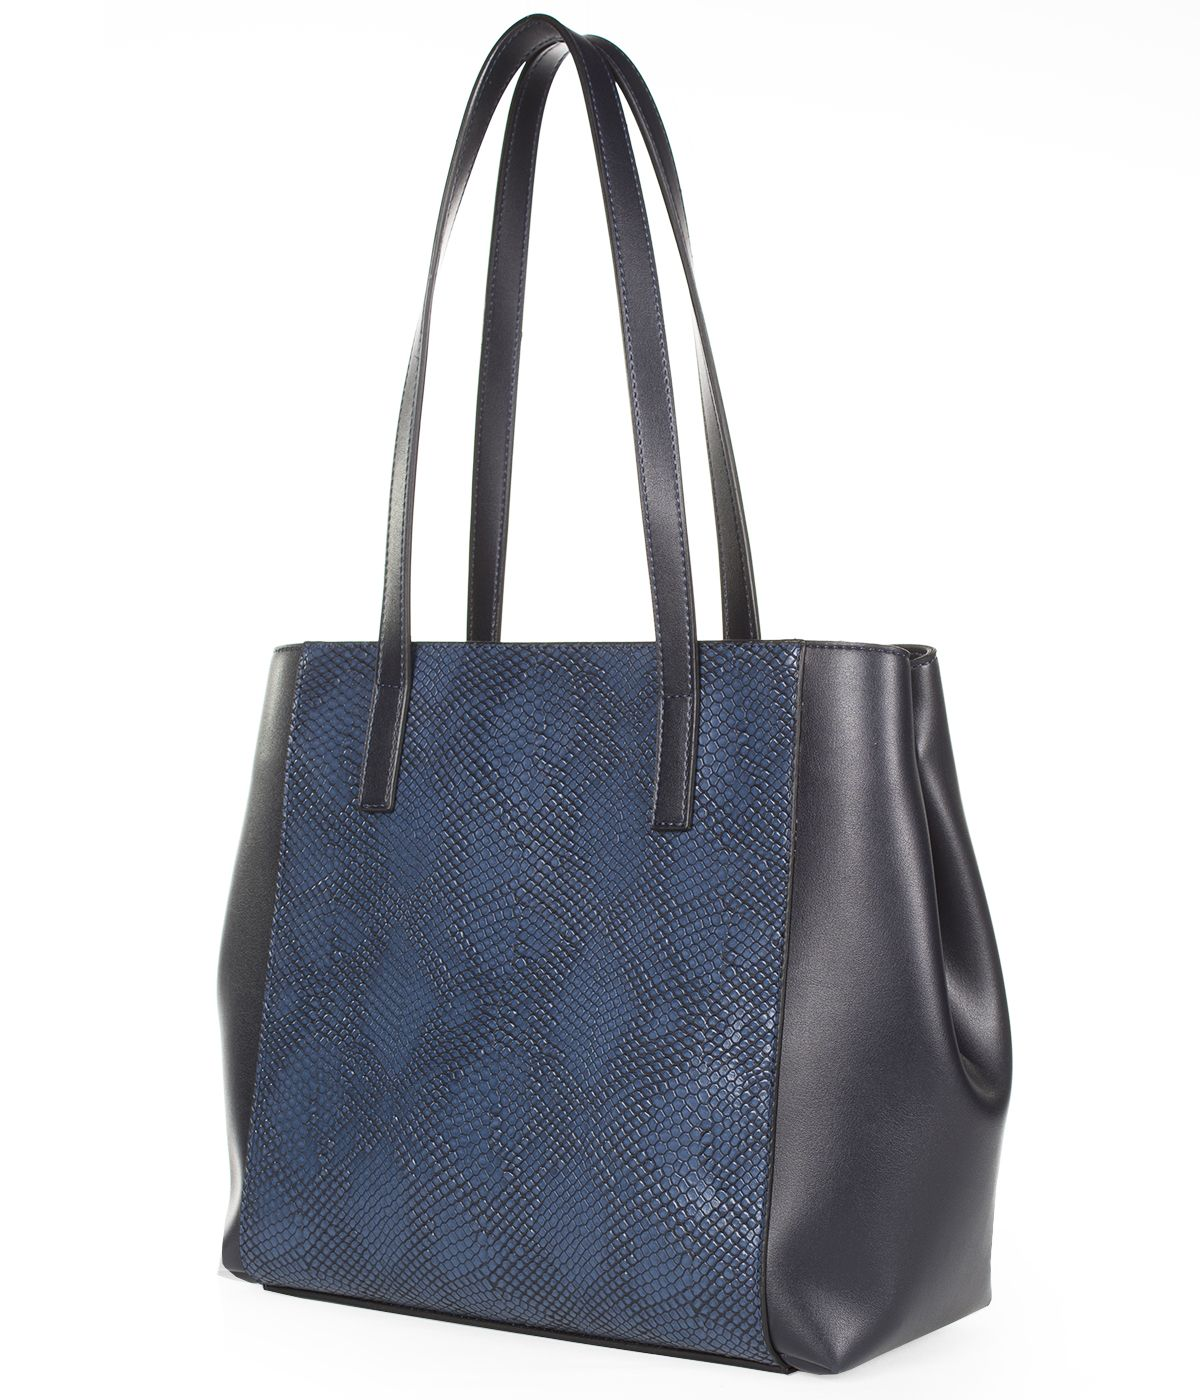 LEATHER BLUE BAG WITH SNAKE SKIN IMITATION  1